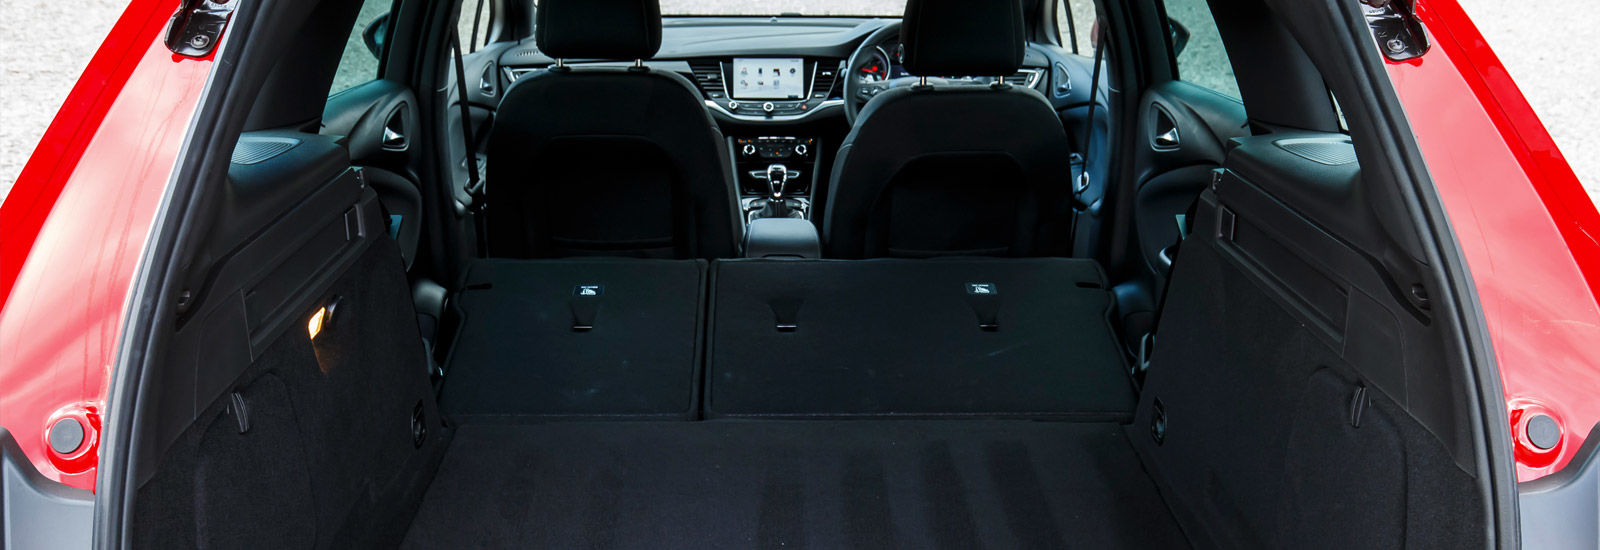 Vauxhall Astra  Sports Tourer sizes  dimensions  carwow